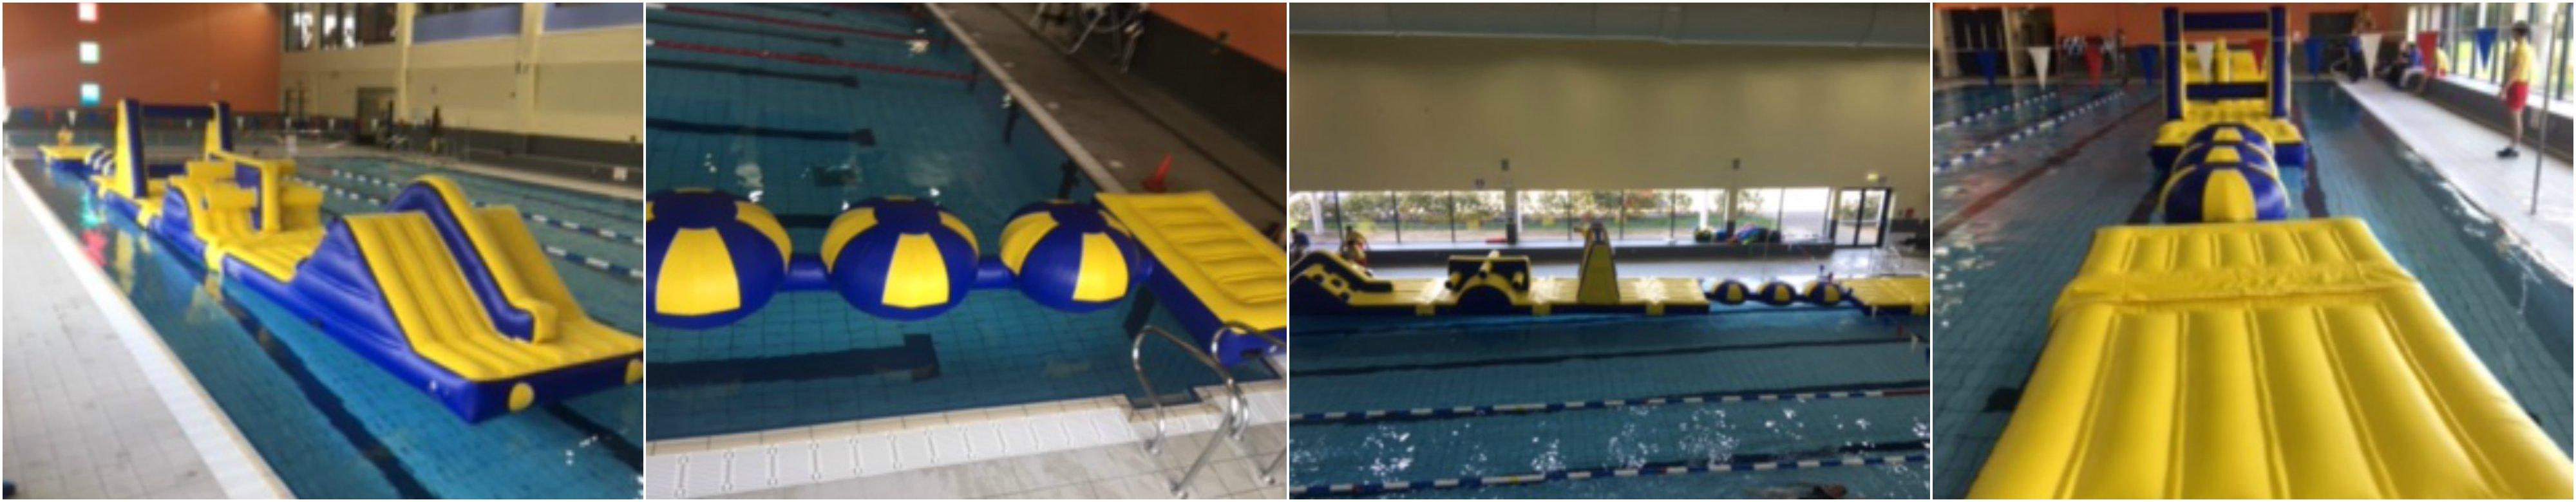 Pool inflatable images